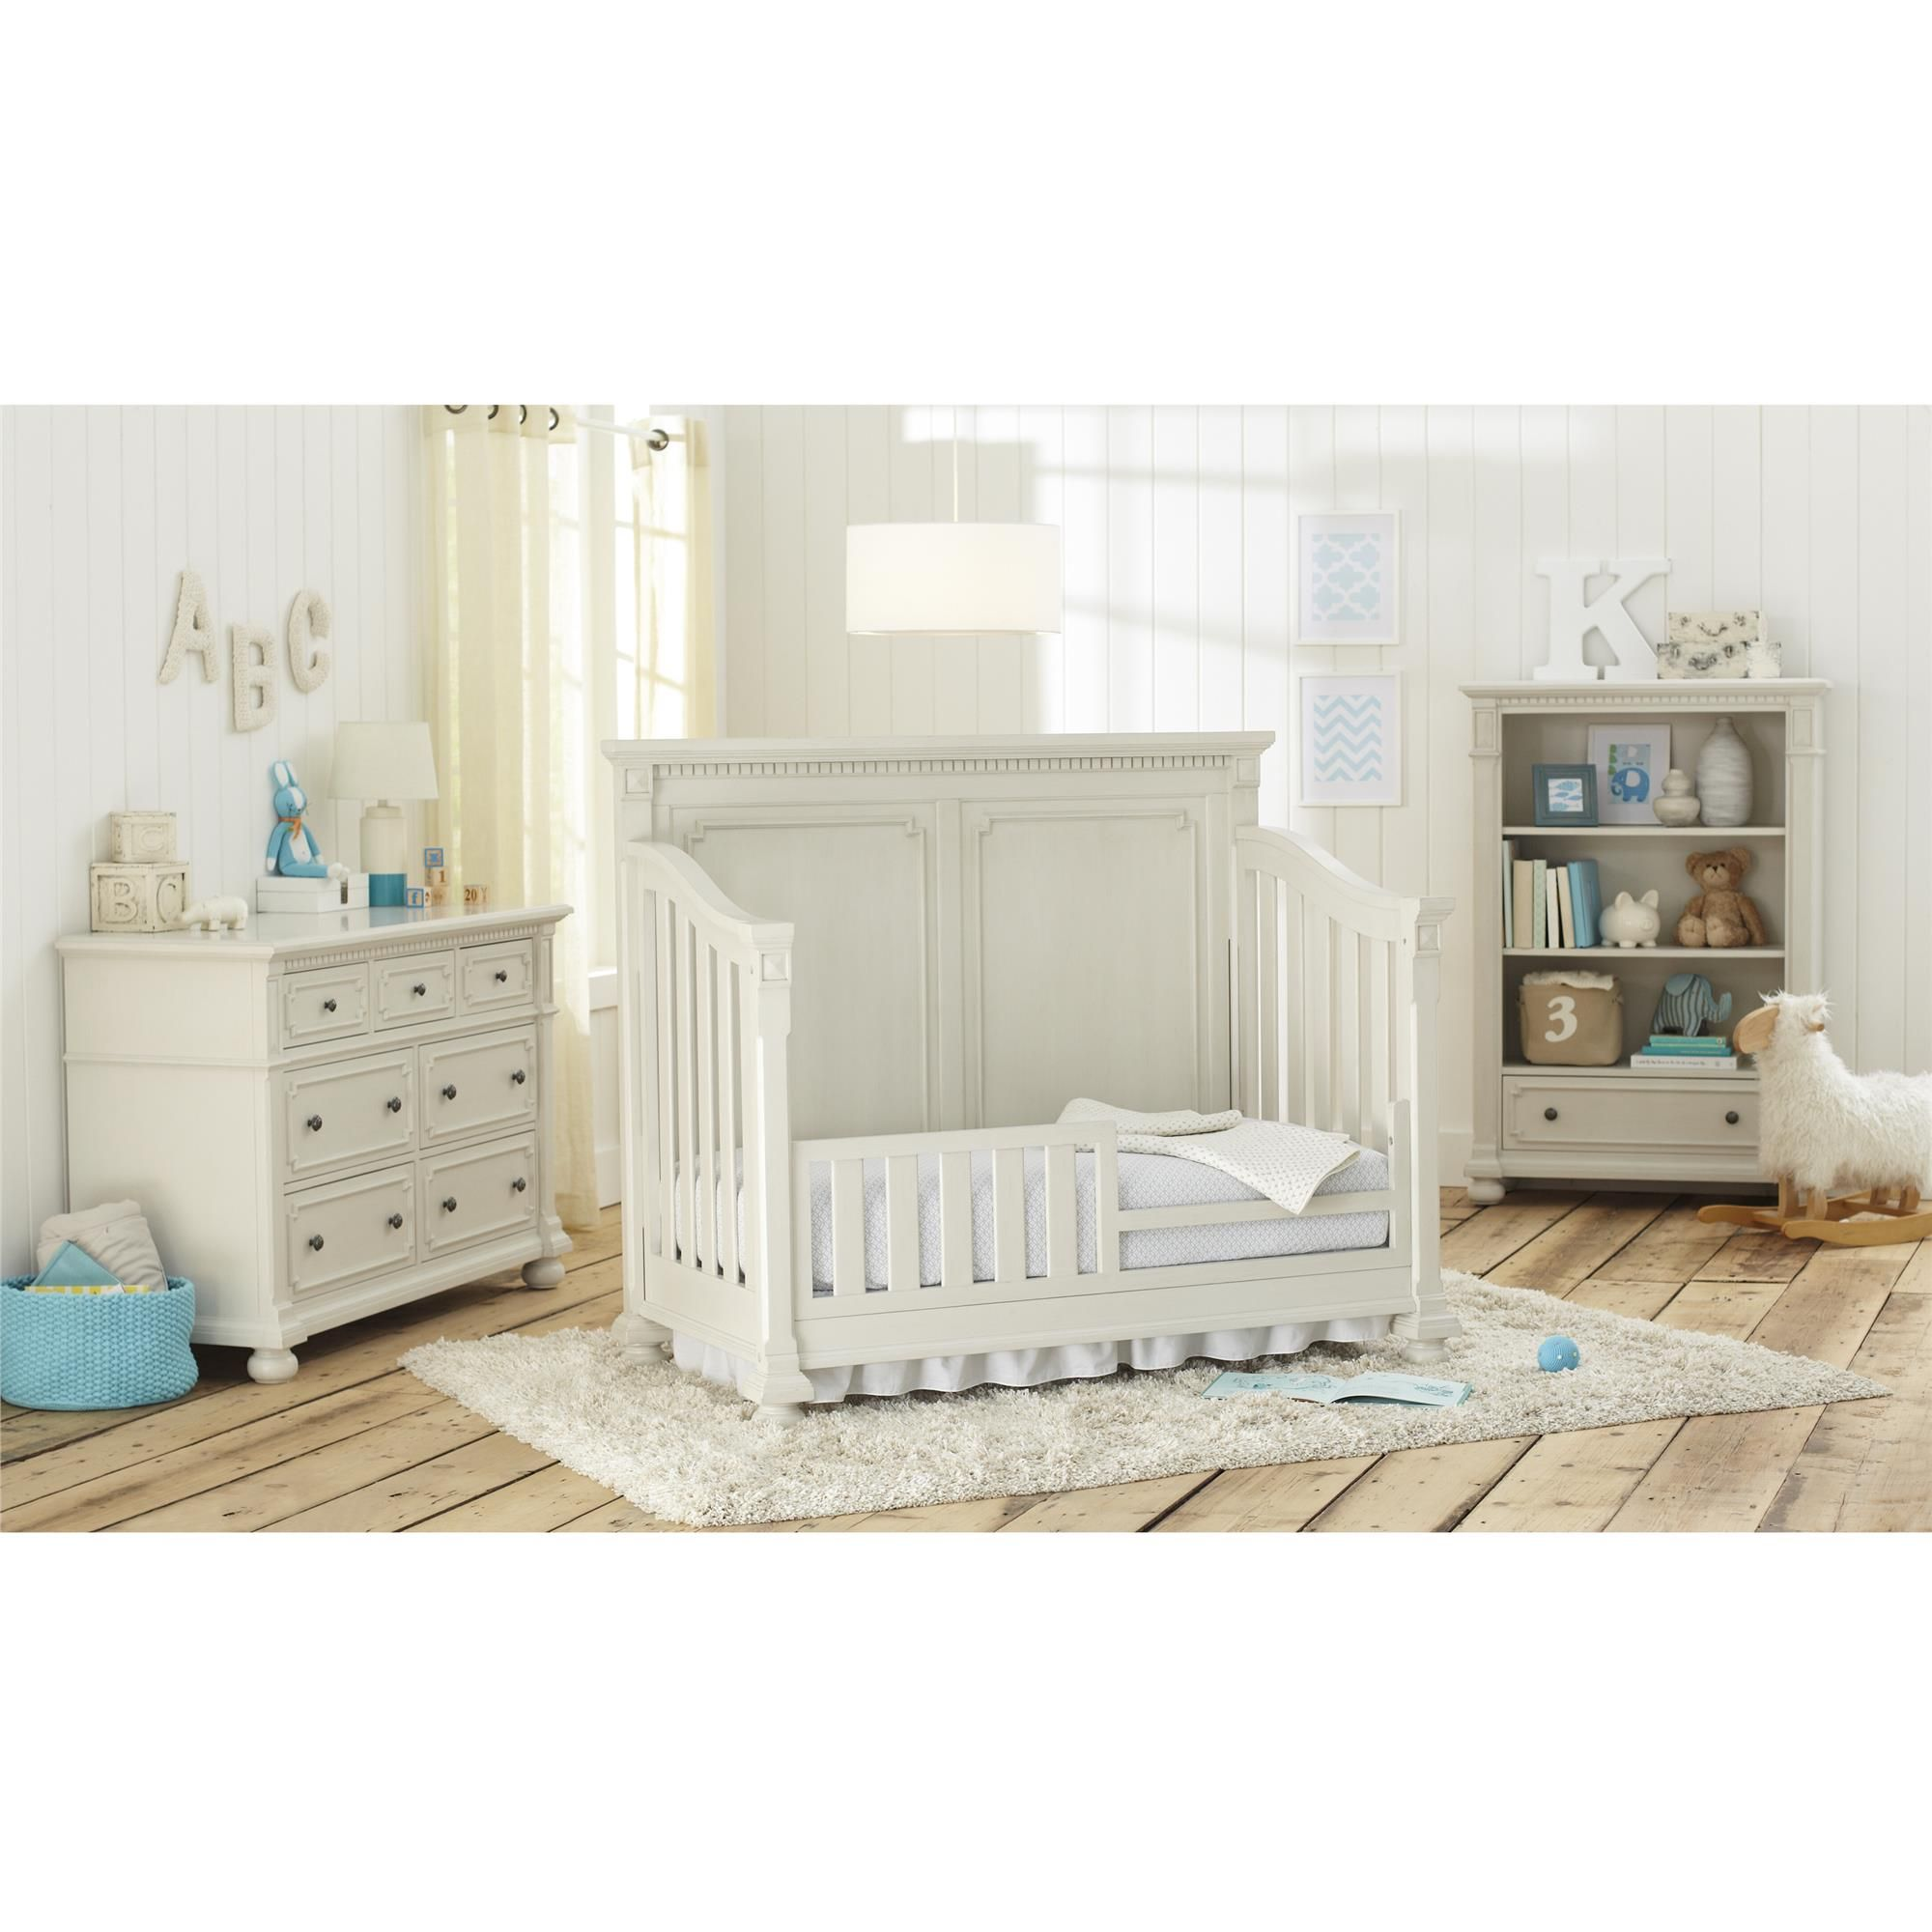 baby babies us crusadeforartbk org tent toys convertible oxford in cribs r canada grey rustic crib